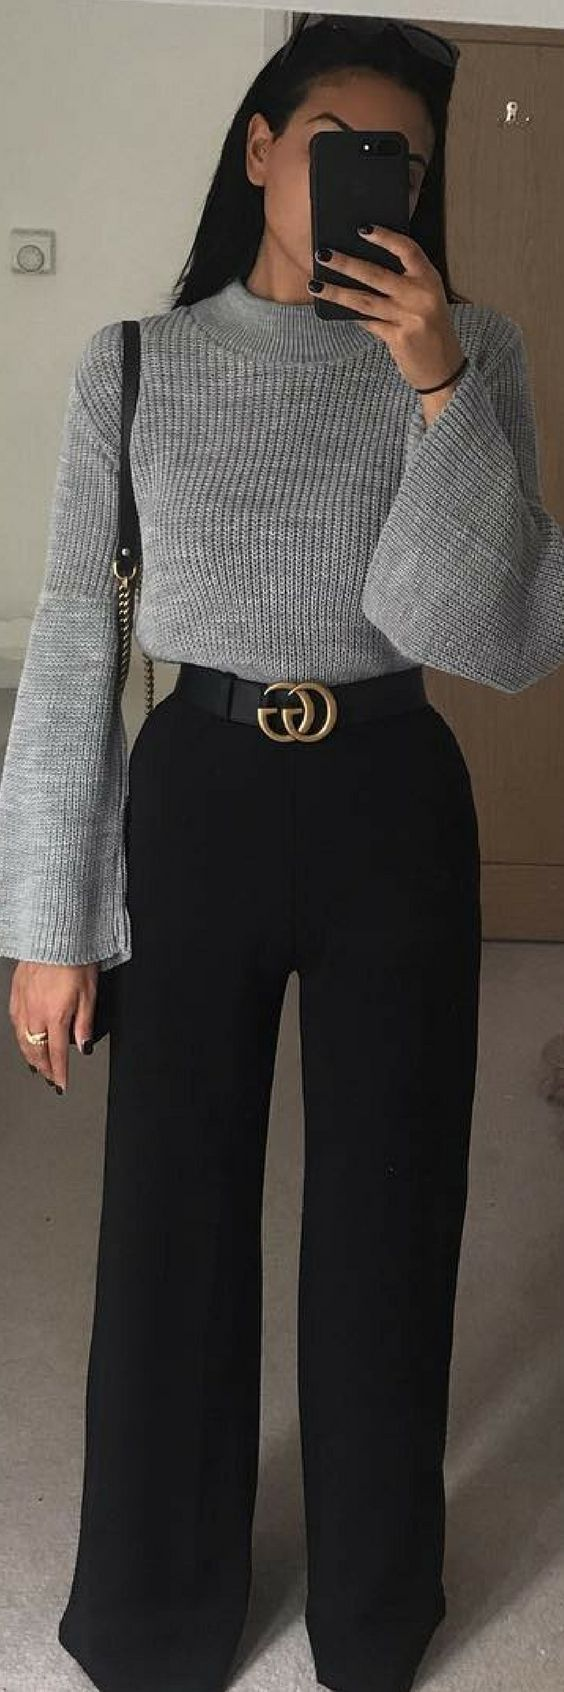 Sensational Holiday Outfit Ideas Top 5 Of The Most Sensational Holiday Outfit Ideas This Fall. Shop The